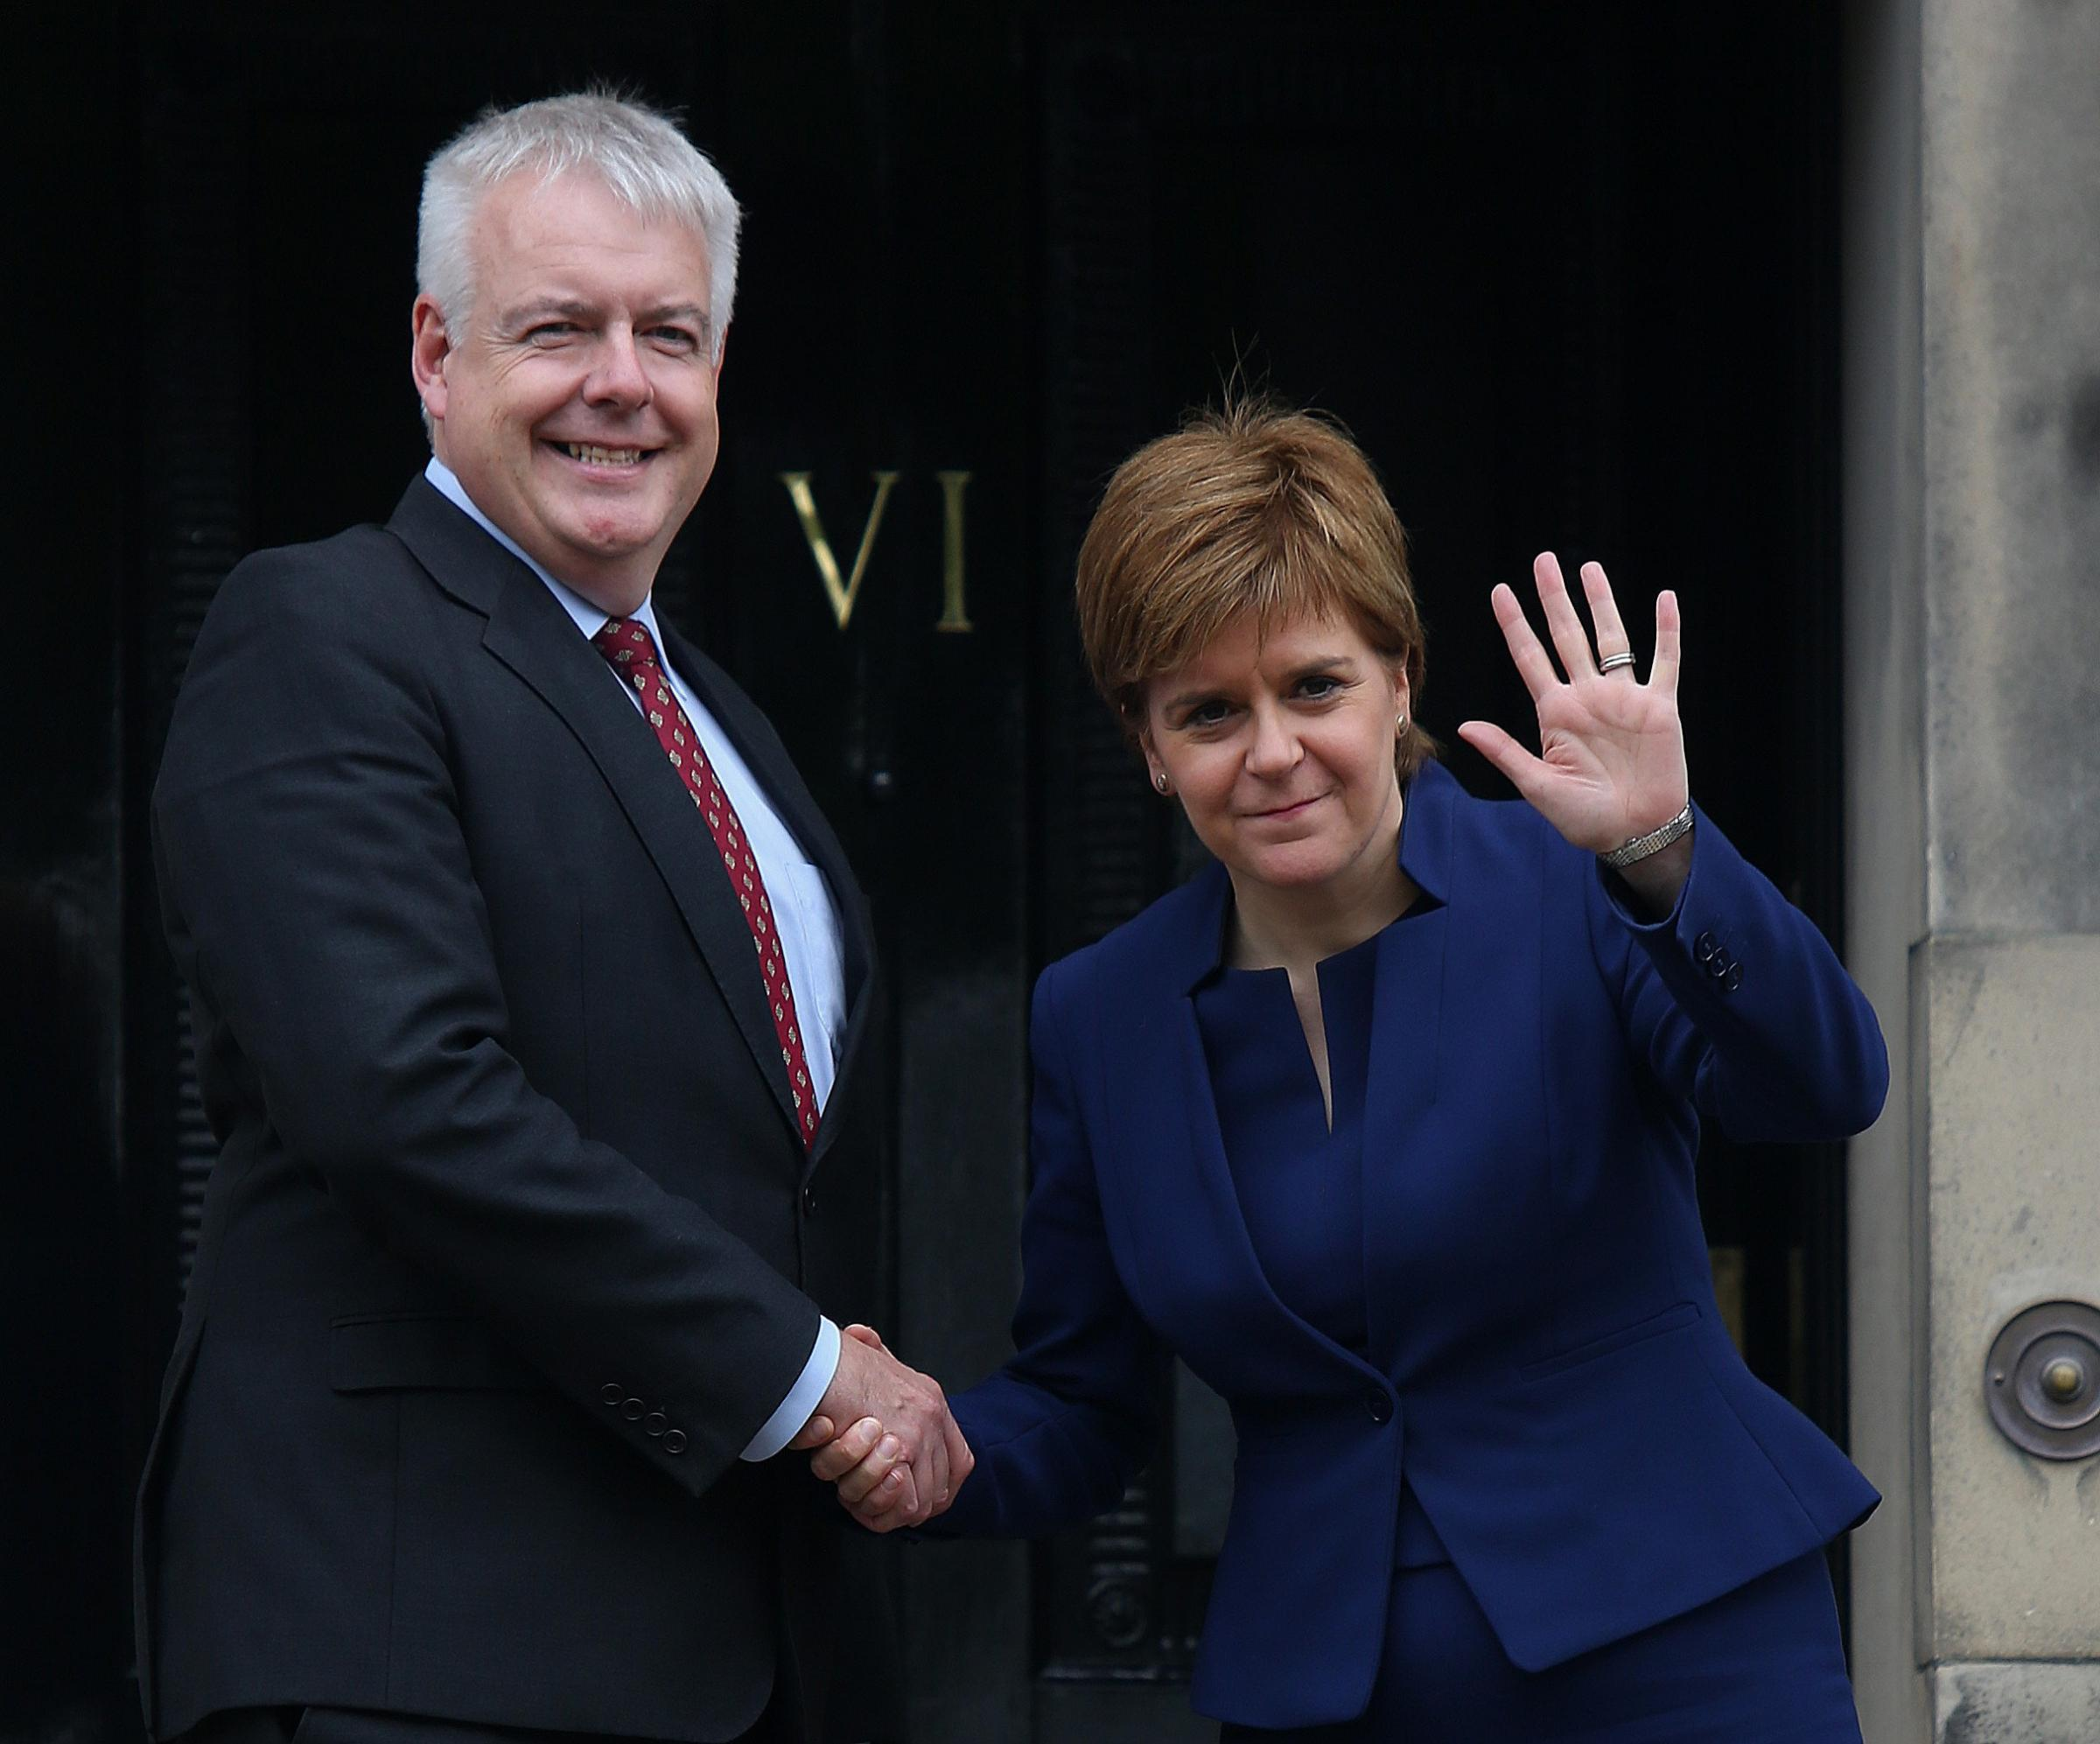 First Minister of Wales Carwyn Jones and Scottish First Minister Nicola Sturgeon at Bute House